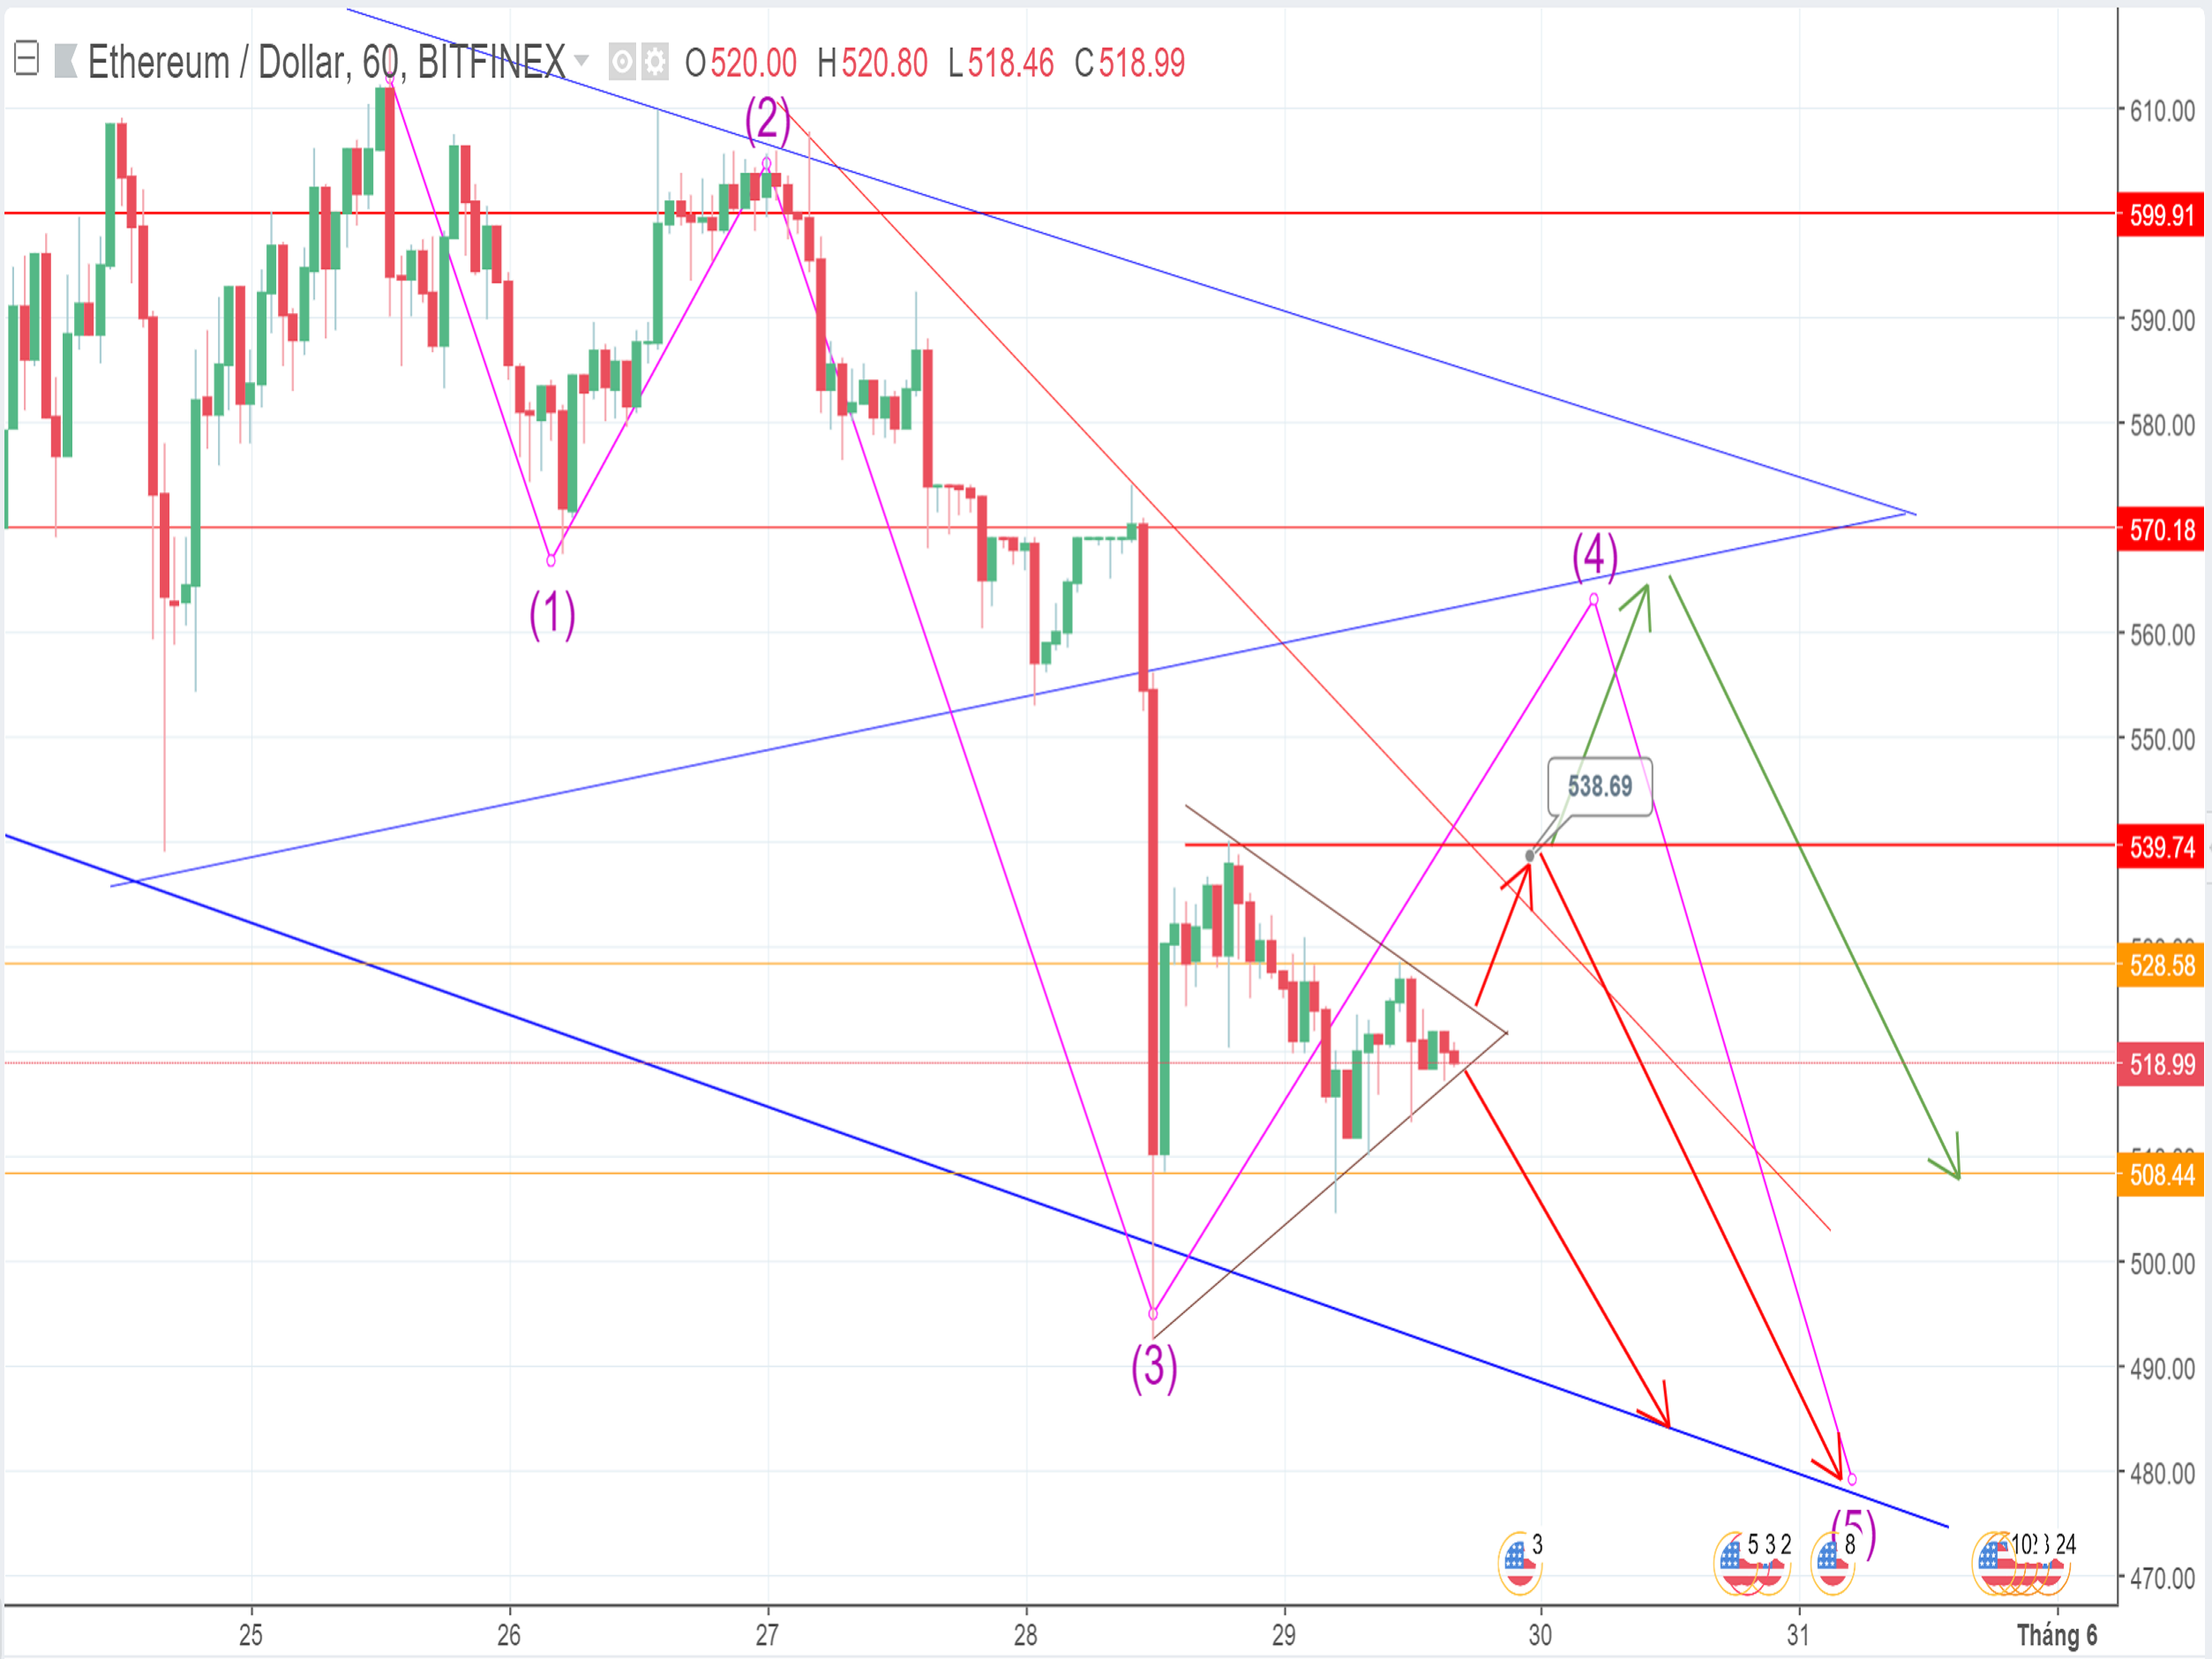 The selling force is still posing a big threat to ETH price (May 29th)